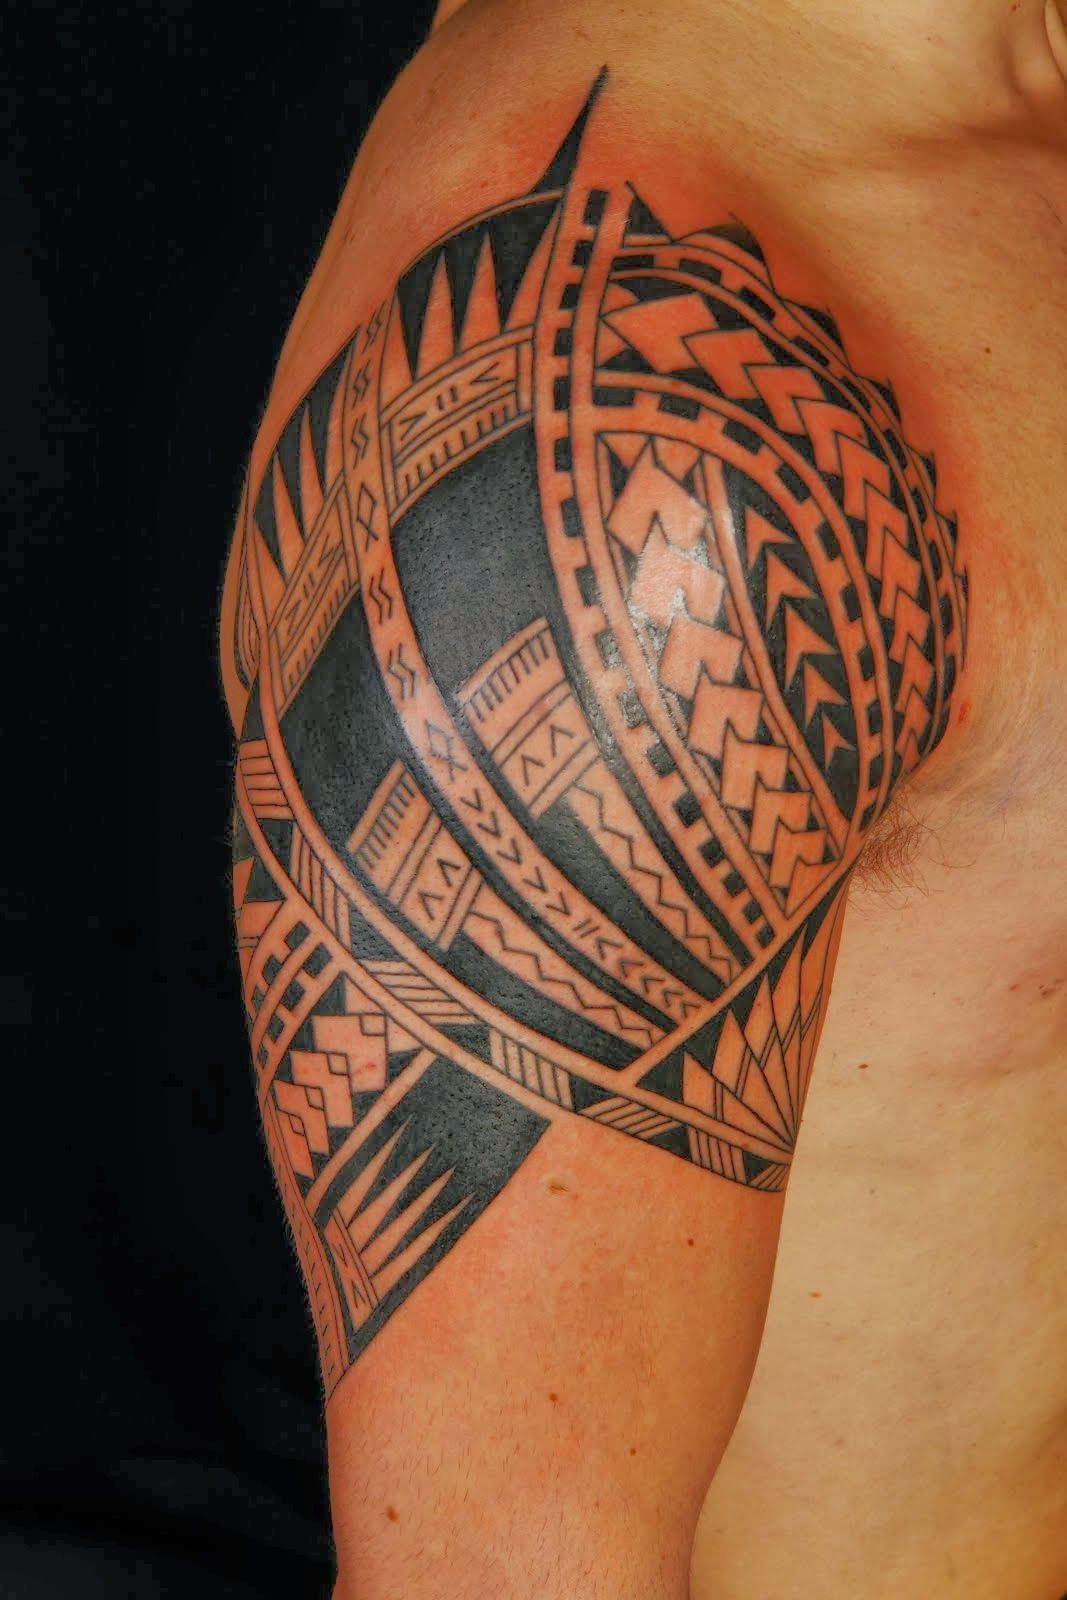 Polynesian tattoo designs cool ideas designs - Samoan Tattoo Designs And Meanings Polynesian Tribal Tattoo Is One Of The Most Requested Tattoo Design